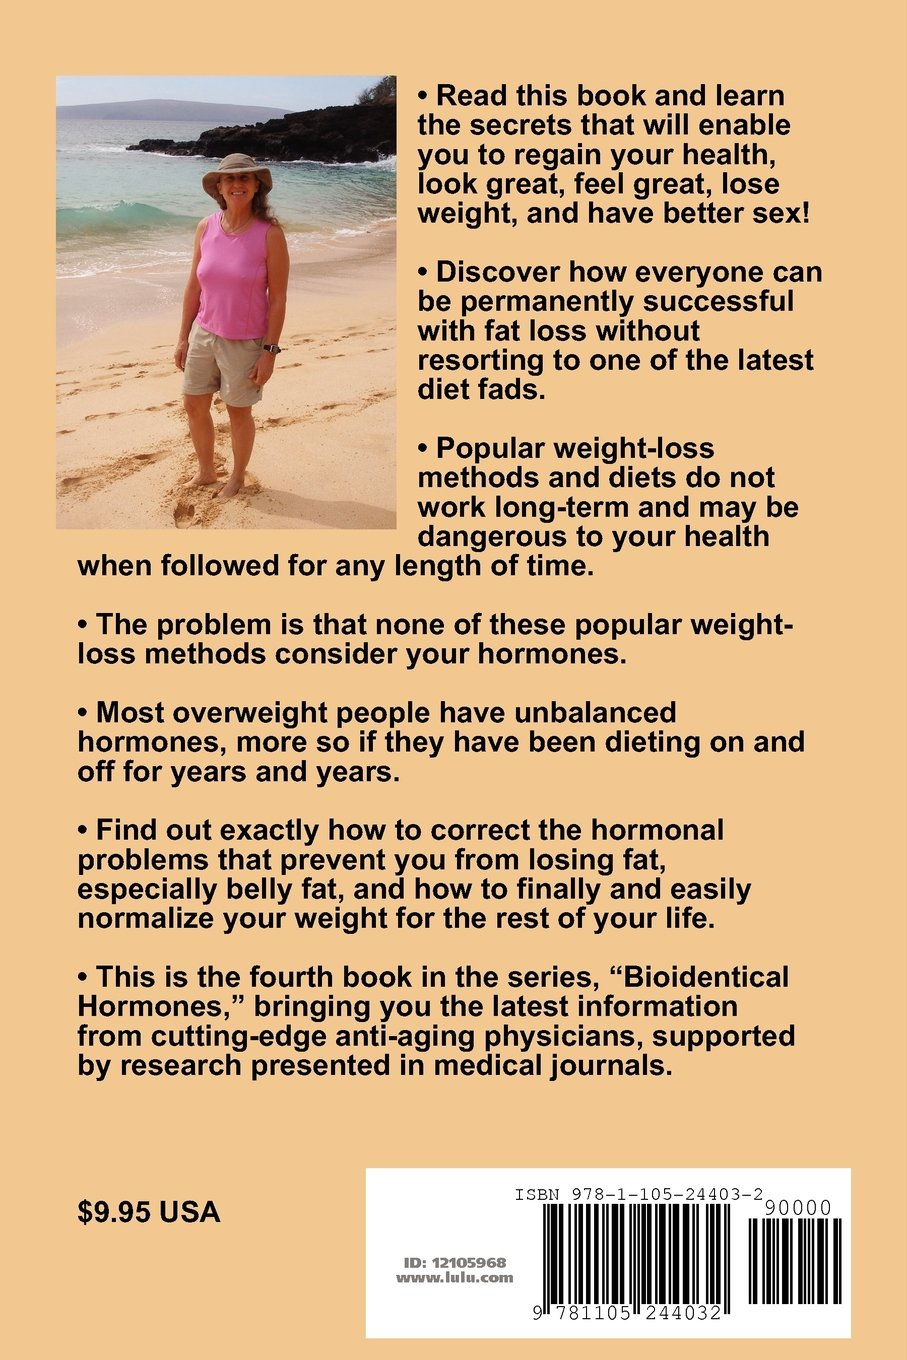 How much weight did you lose in 30 days